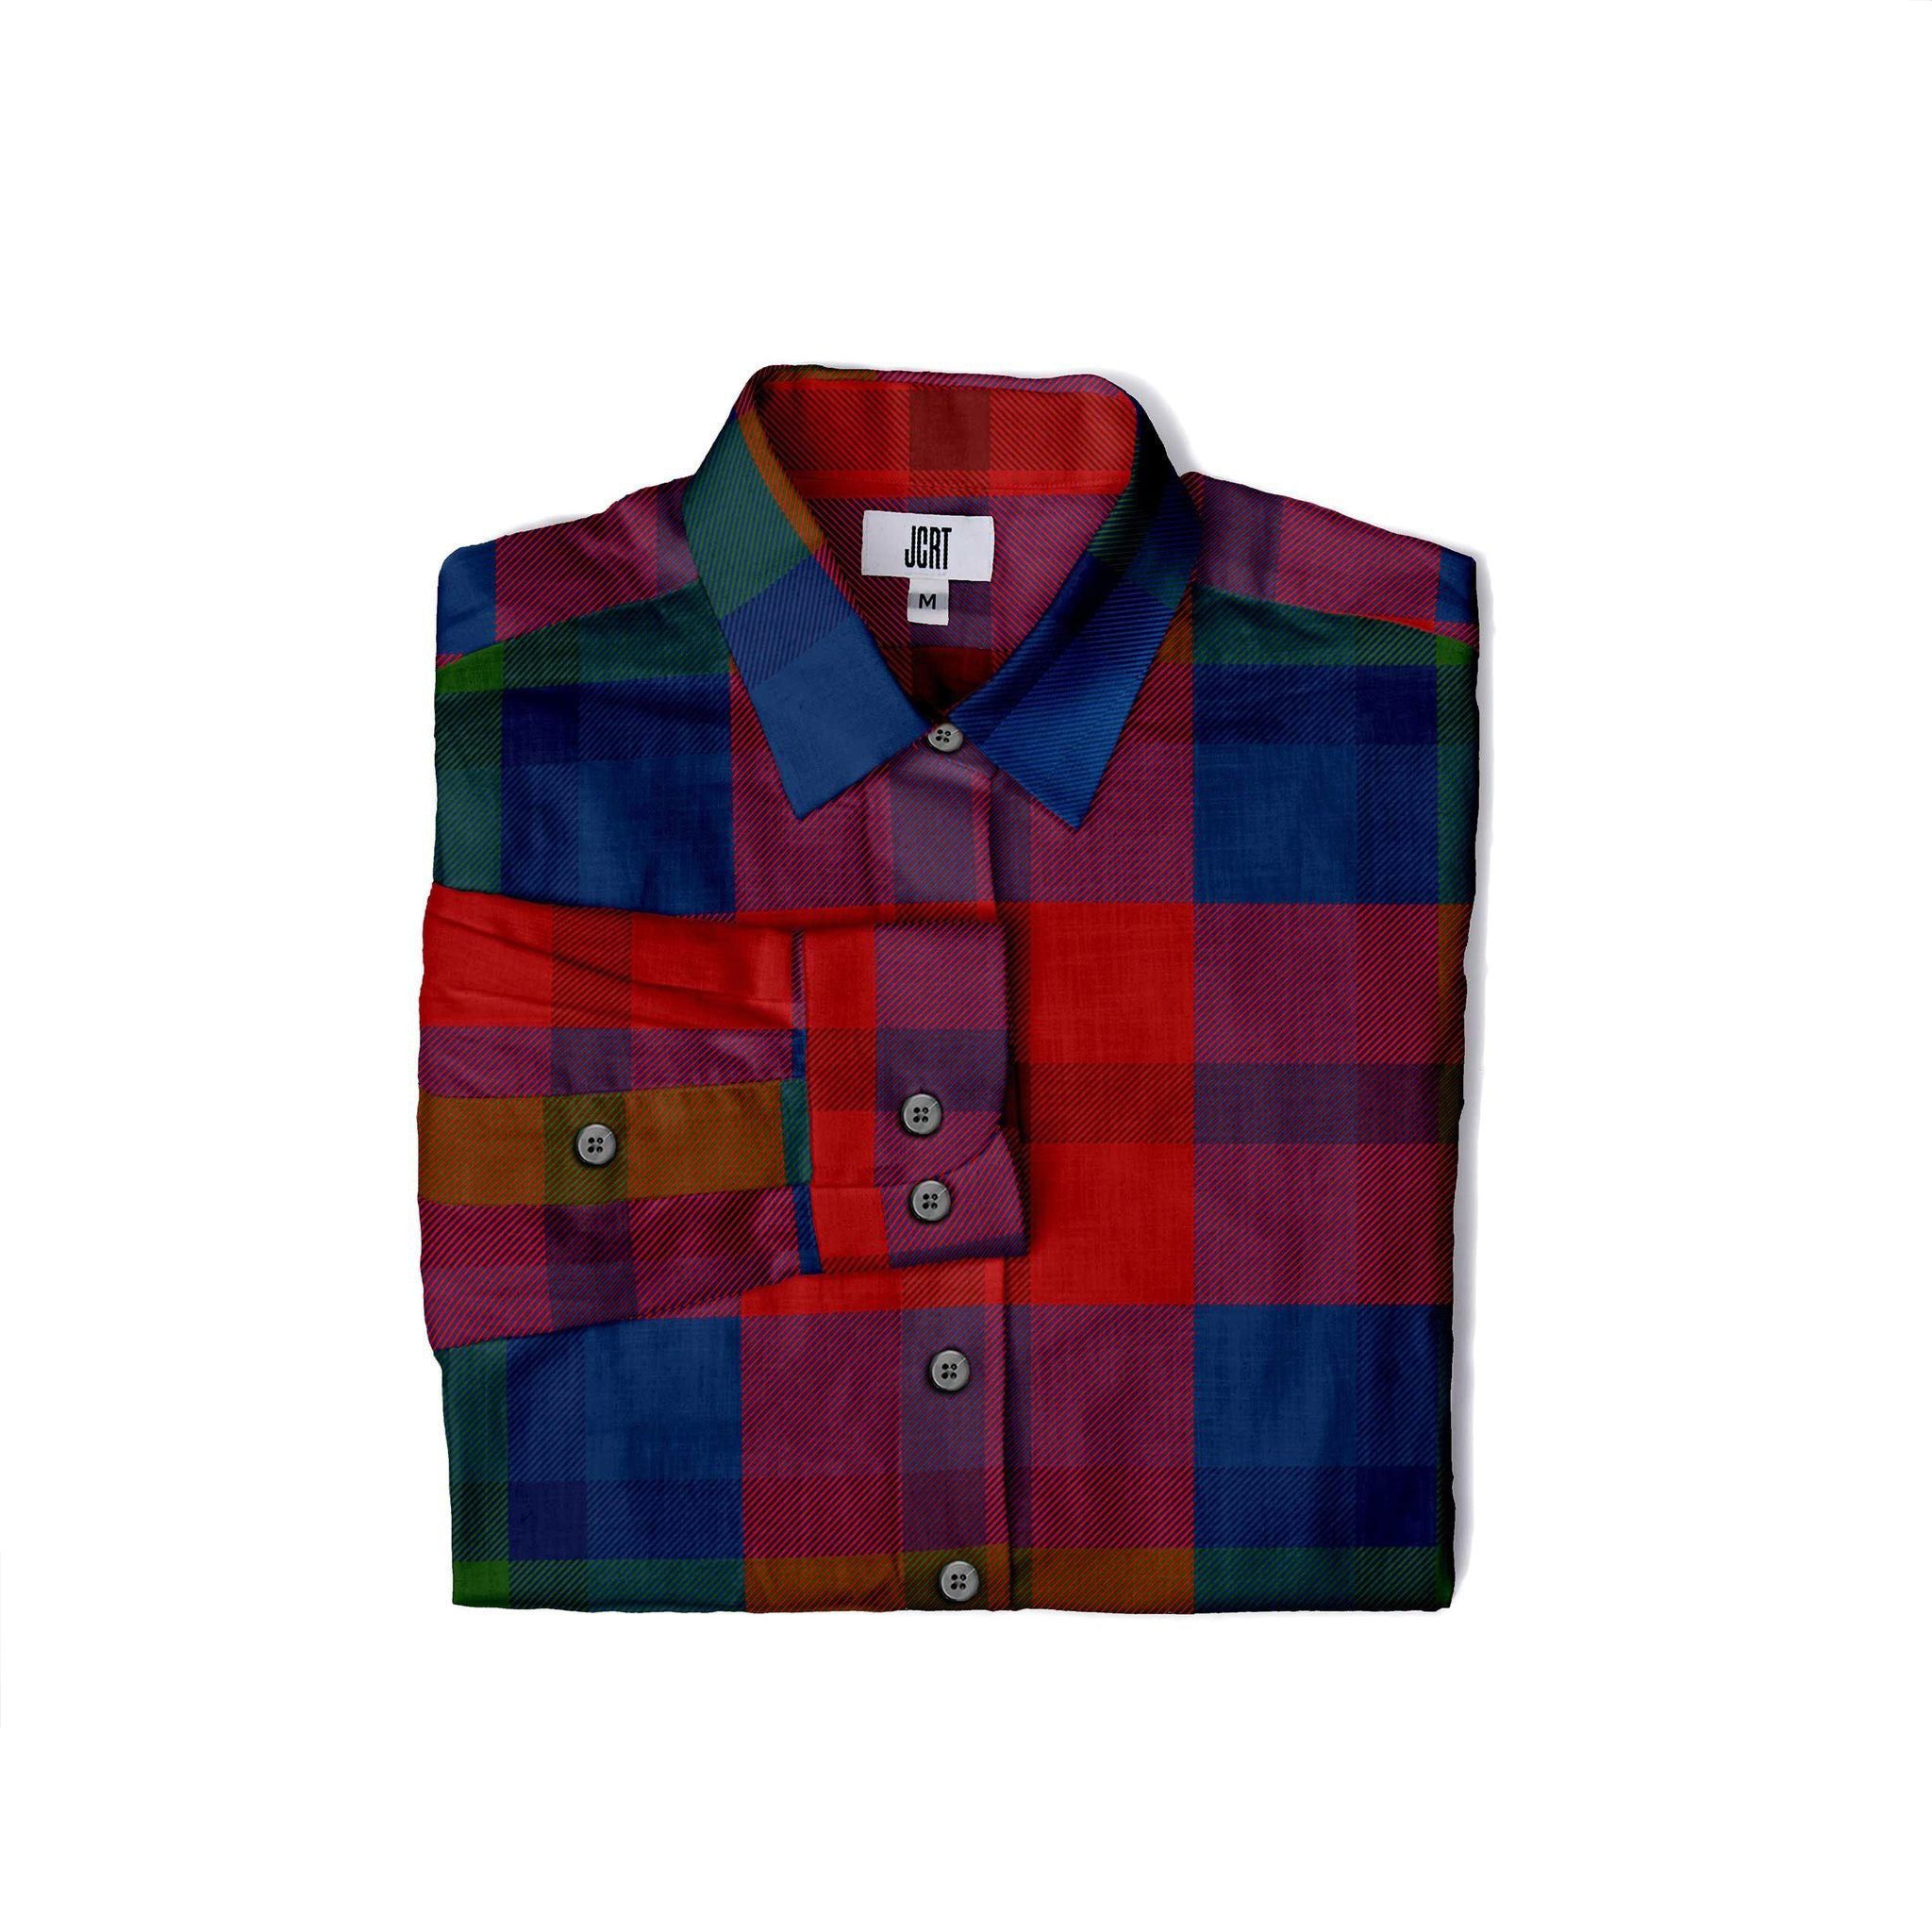 The JCRT Stubbs & Wootton Velvet Plaid Women's Shirt